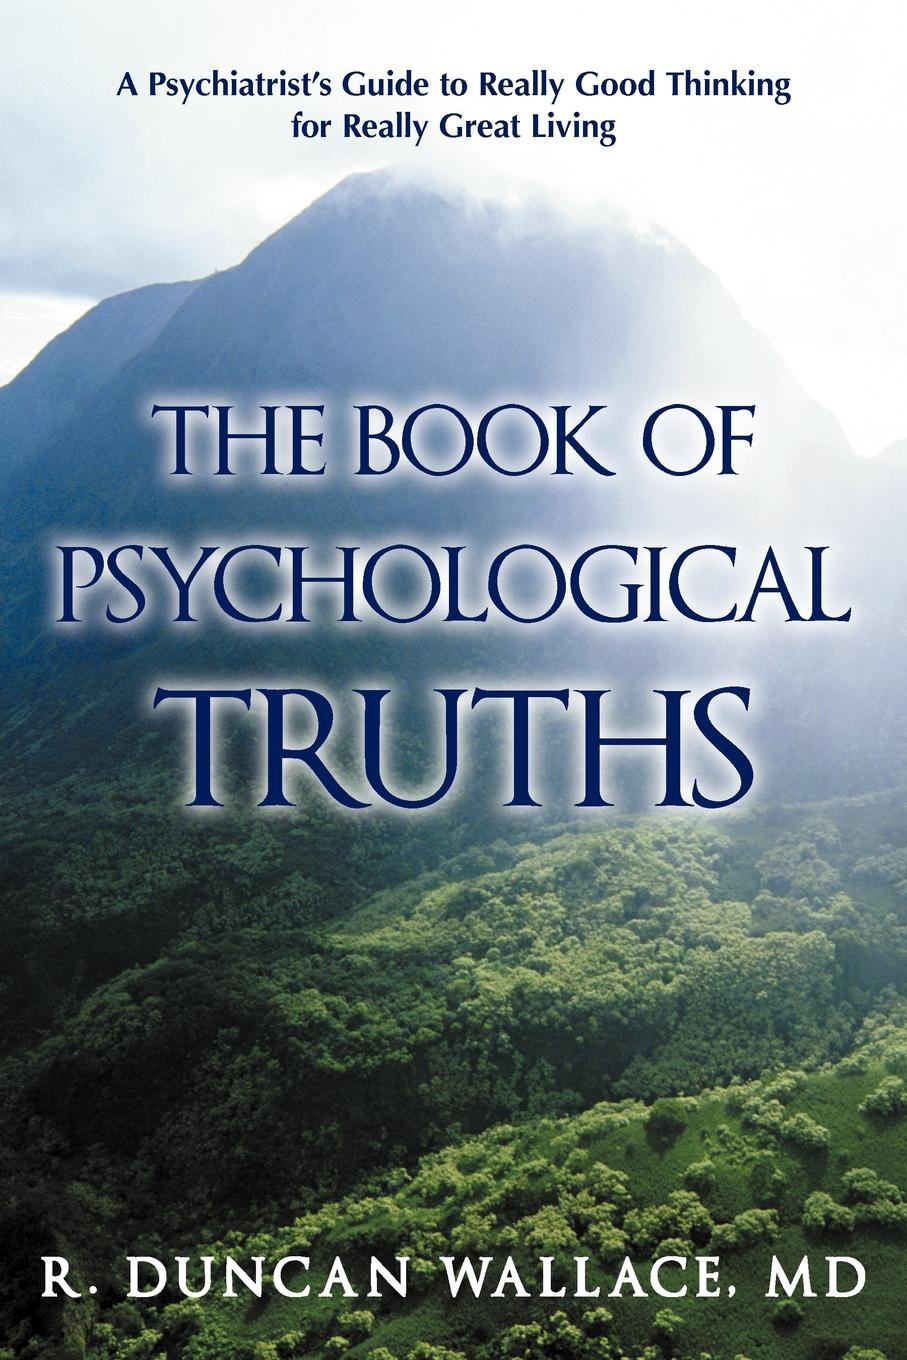 R. Duncan Wallace MD. The Book of Psychological Truths. A Psychiatrist.s Guide to Really Good Thinking for Really Great Living